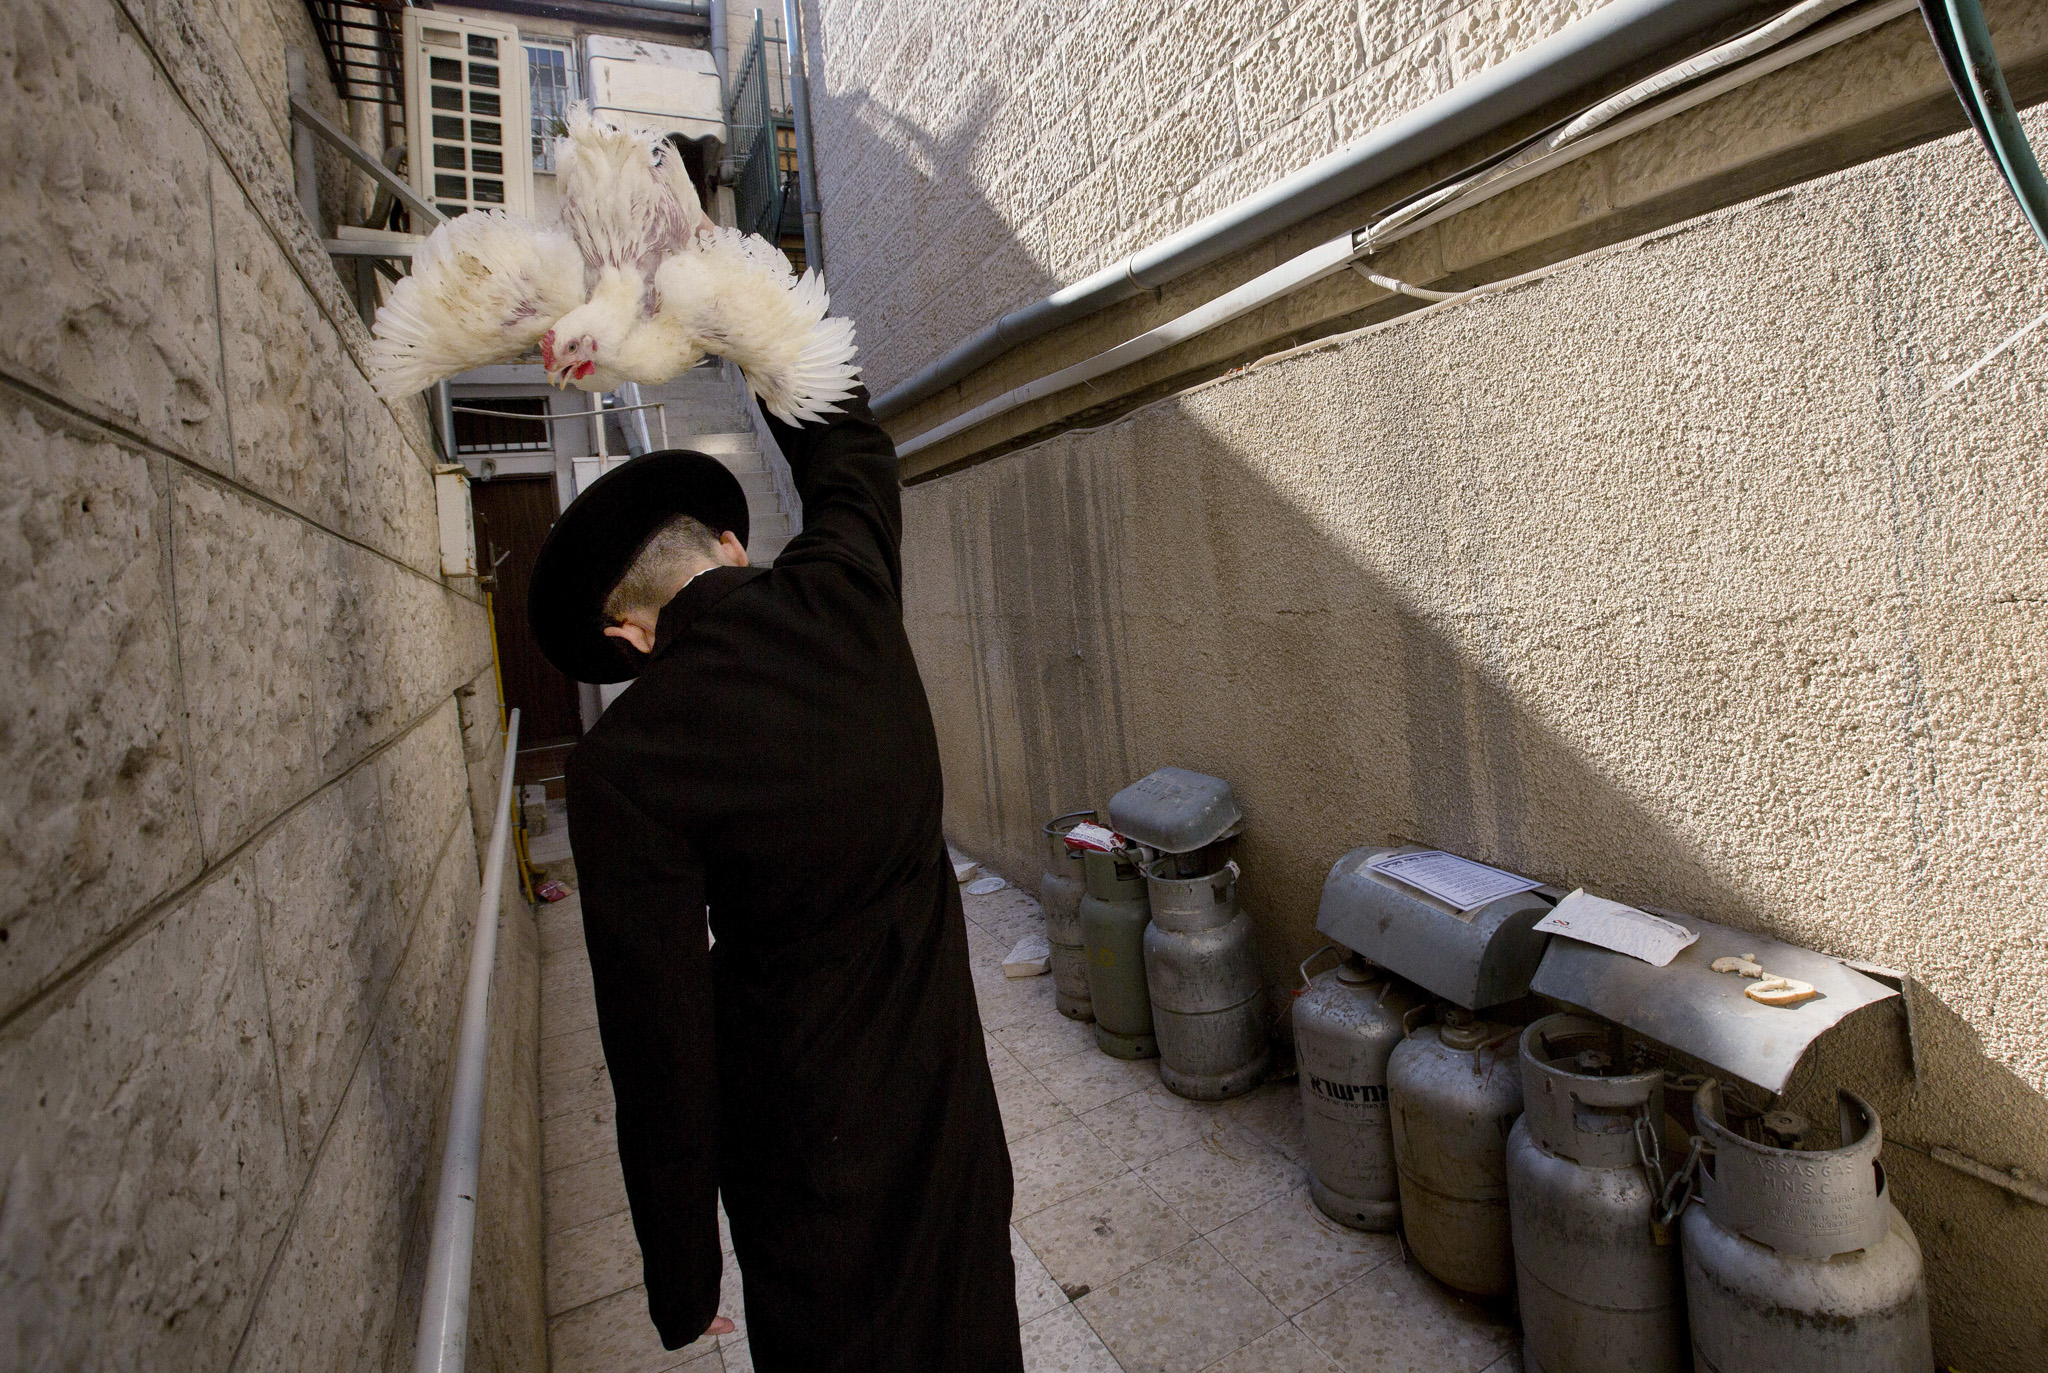 An ultra-Orthodox Jewish man swings a chicken over his head as part of the Kaparot ritual in Jerusalem,